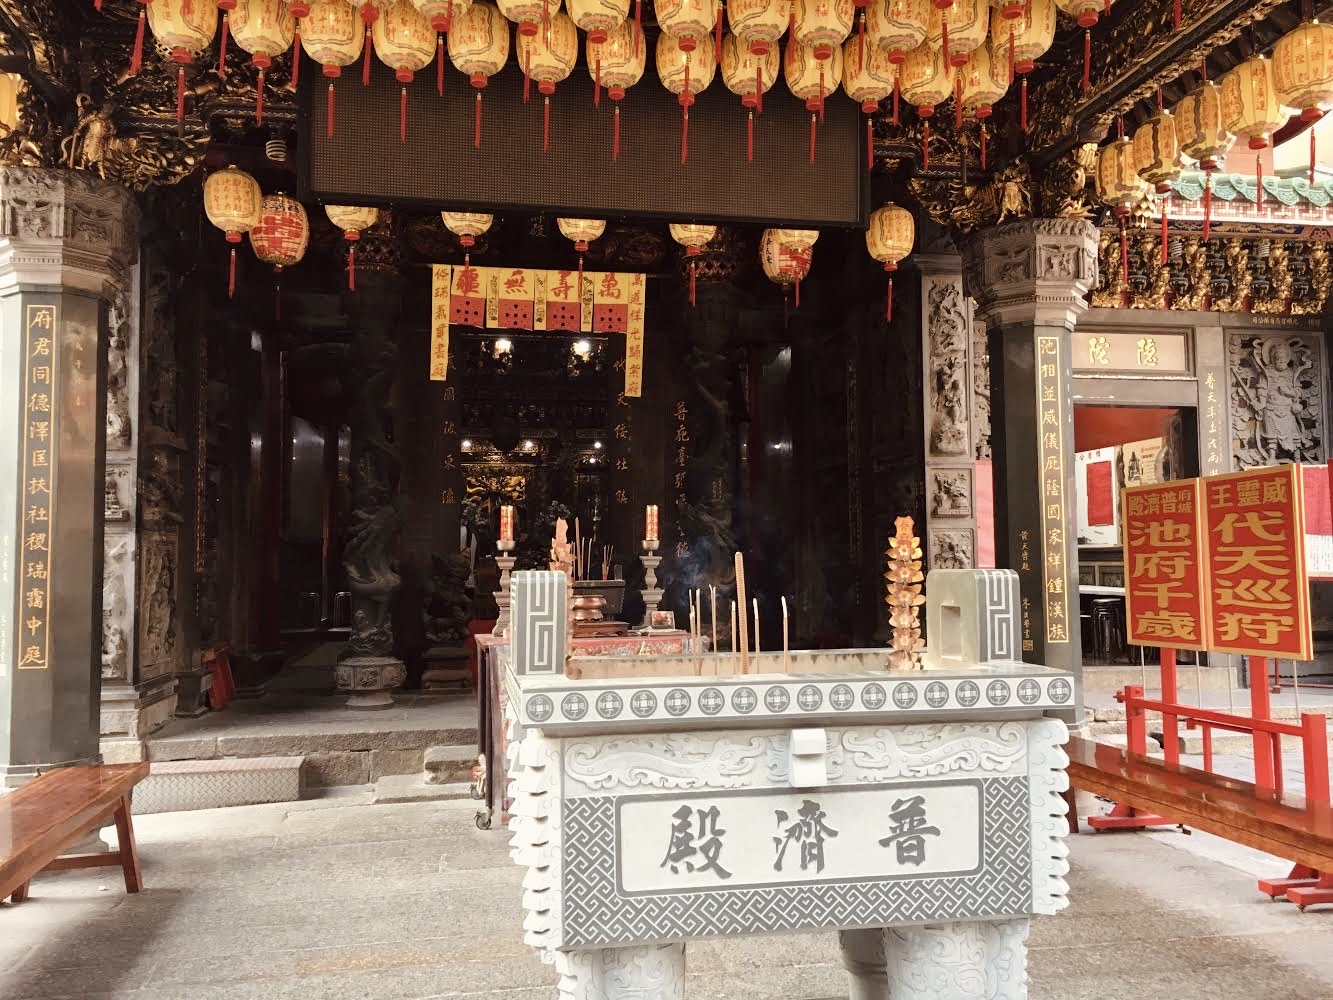 Puji Temple in Tainan is a historic place of worship honouring the Holy King